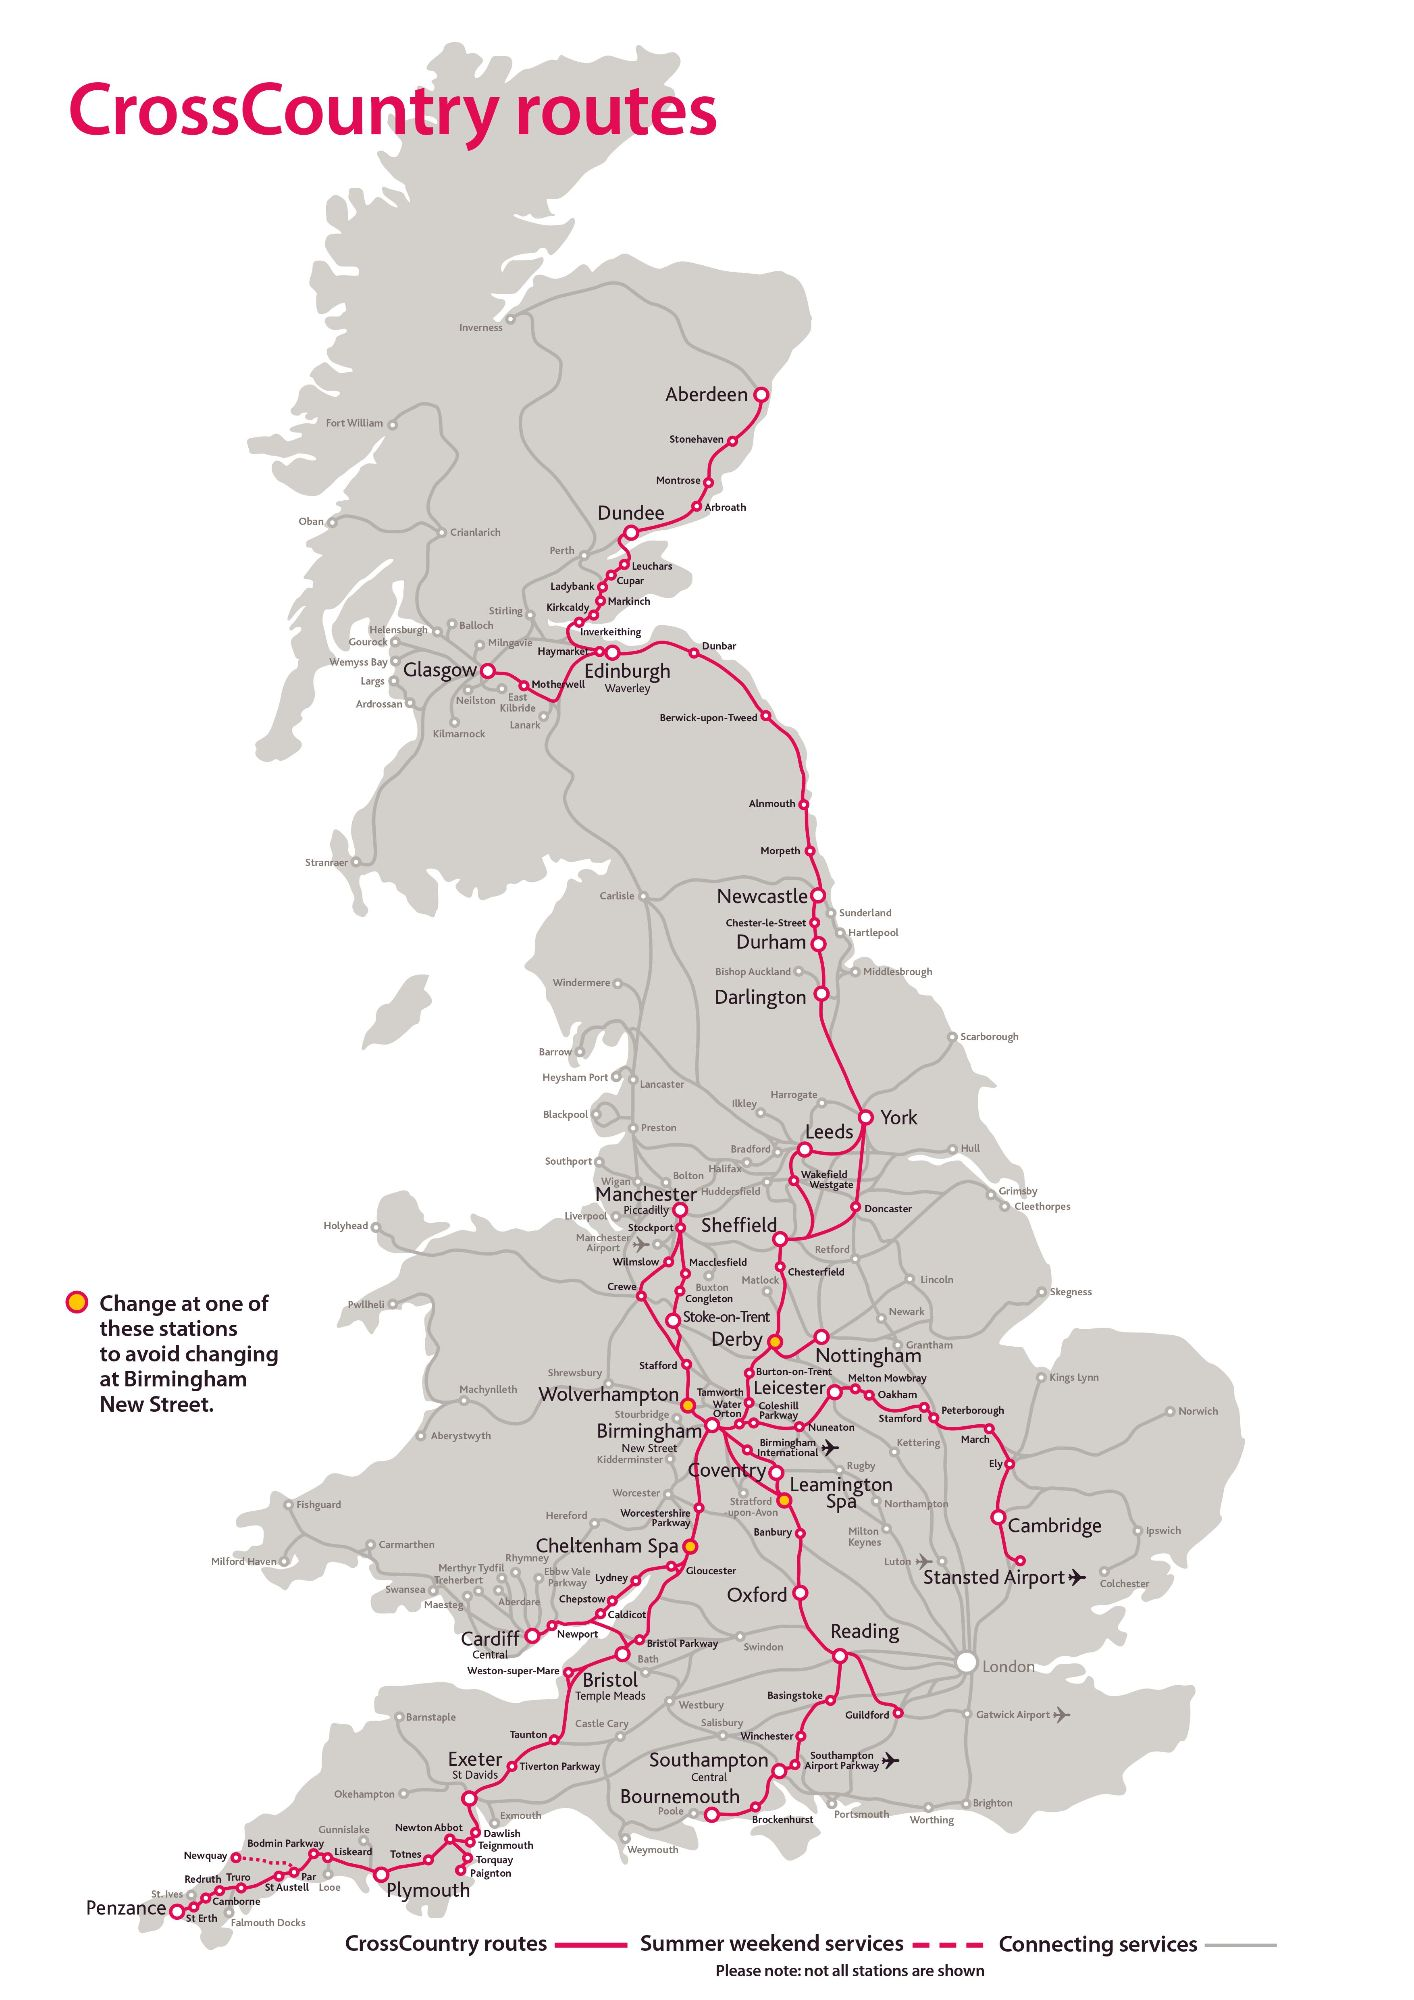 Image showing the CrossCountry trains route map circa 2021.